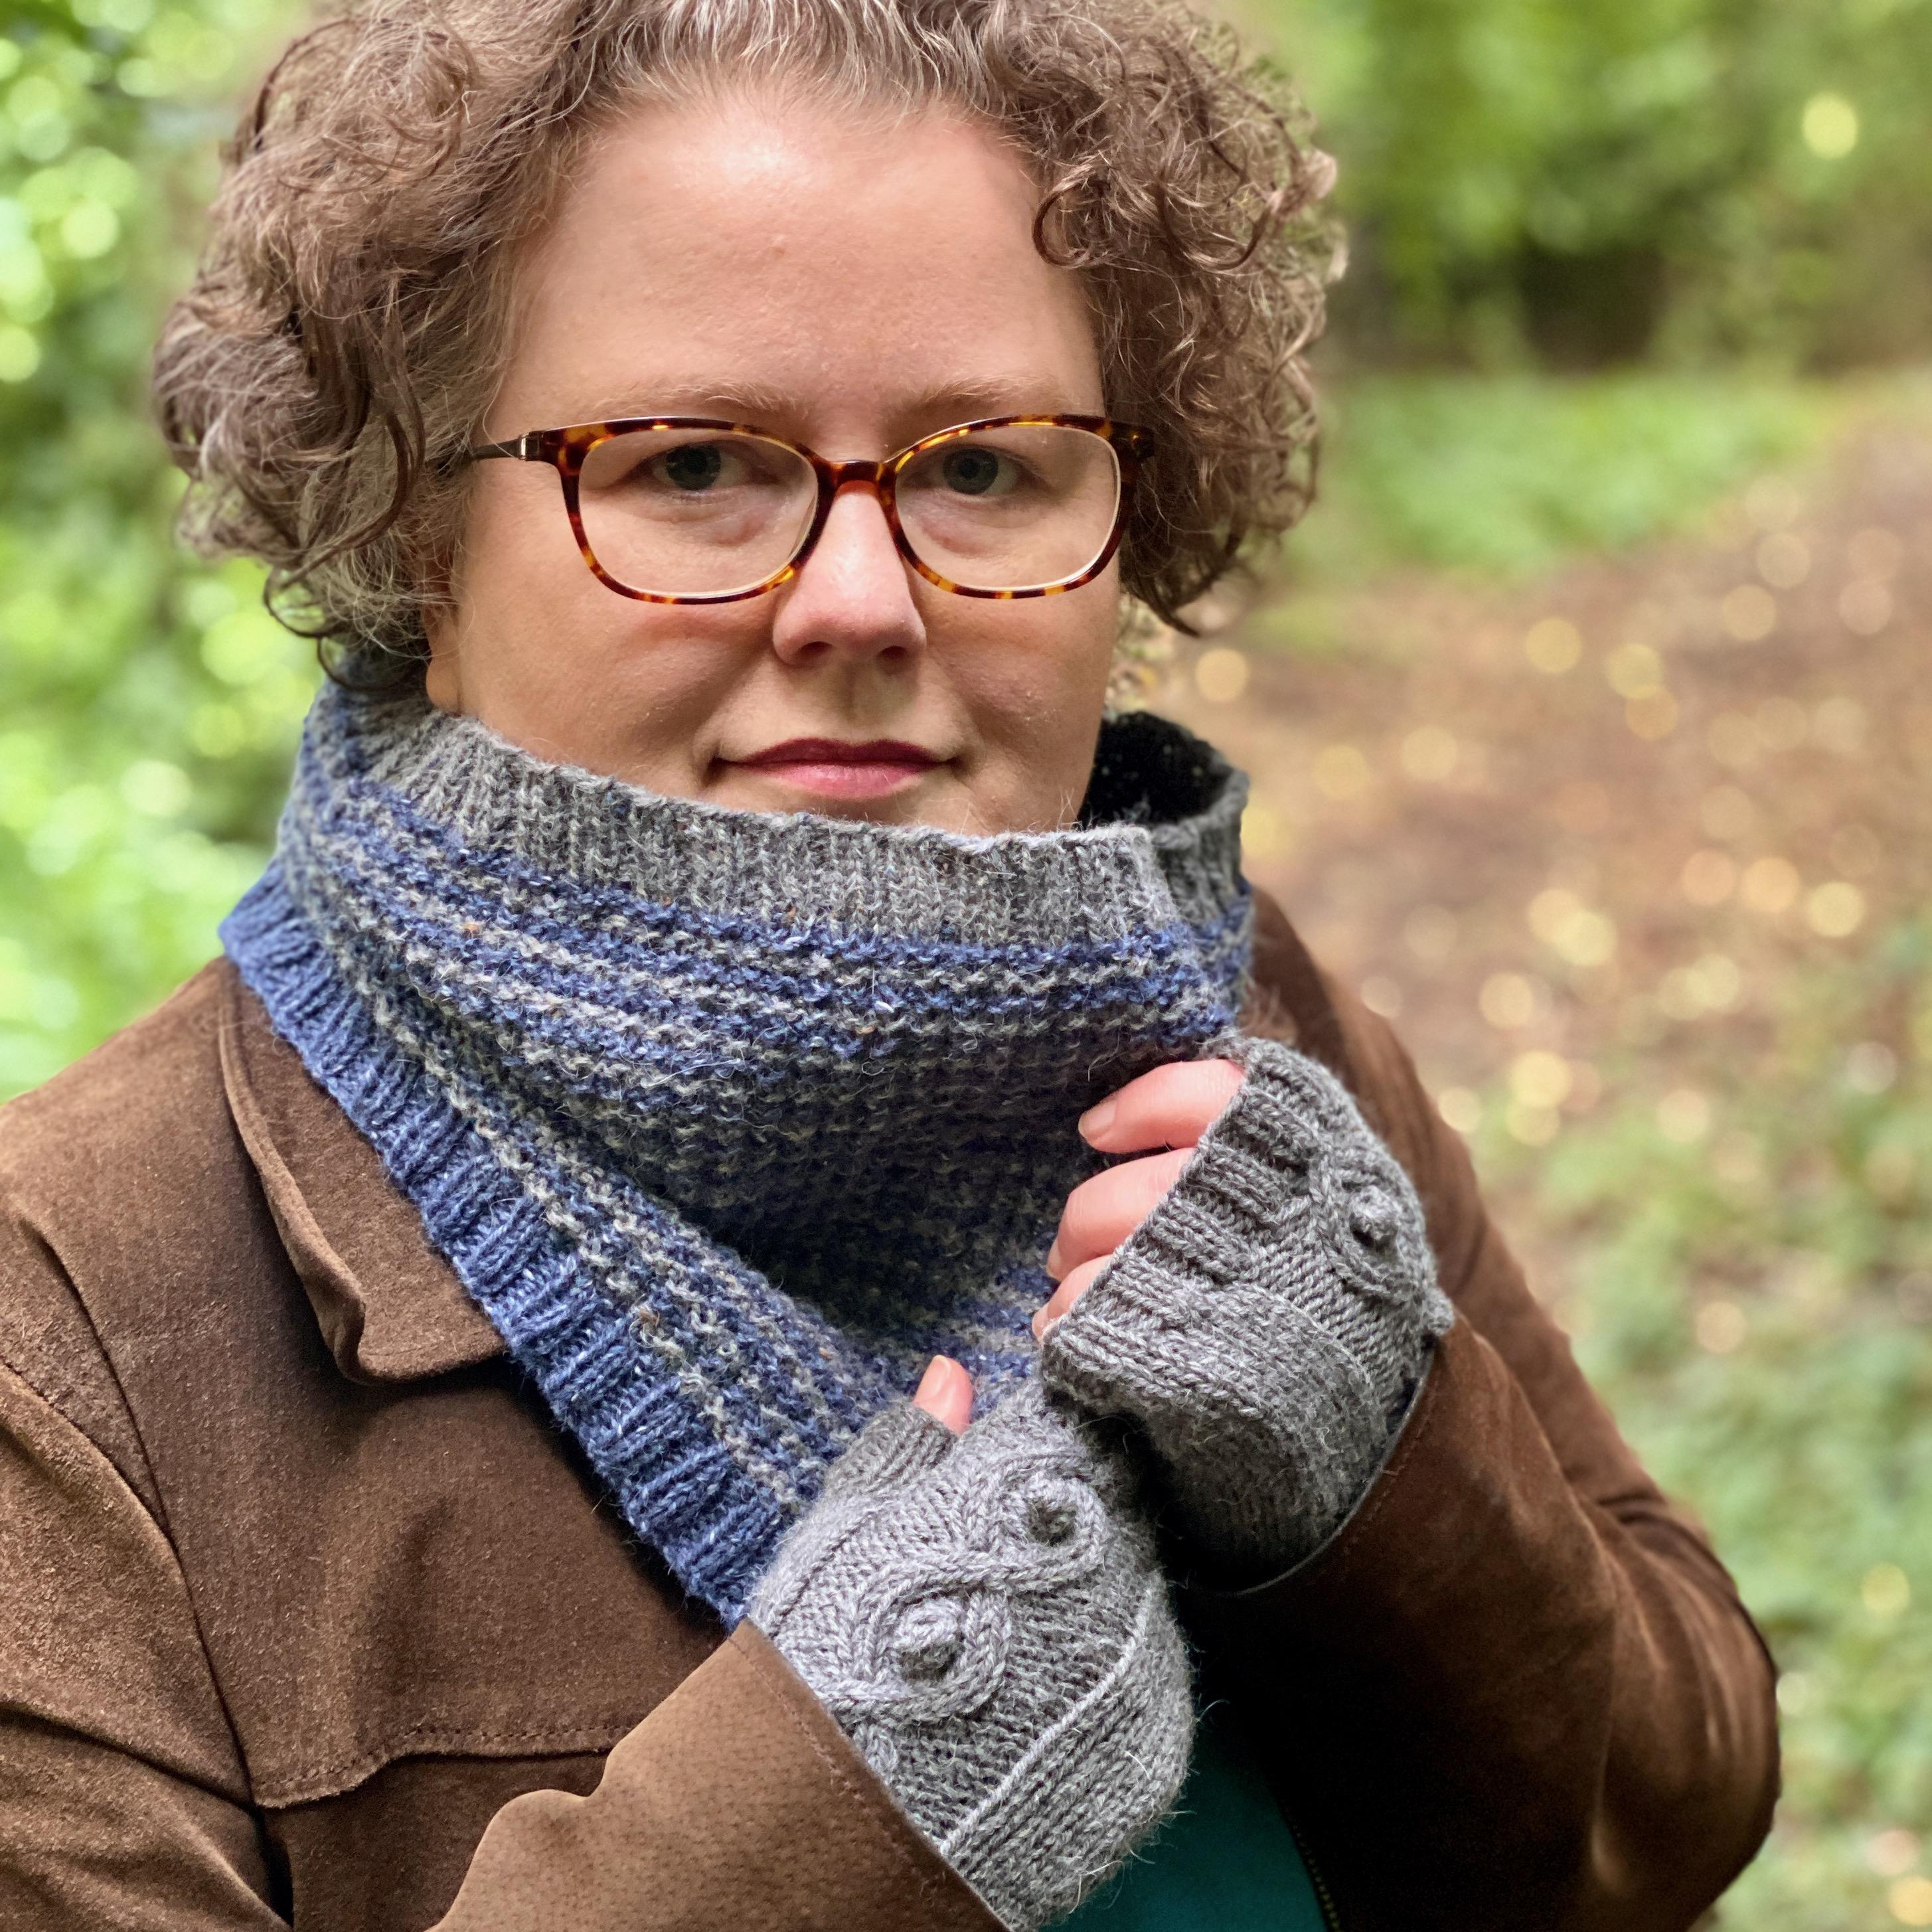 Hannah wearing trudy cowl knitted in dark sea blue and light grey wand pair of grey diamond mitts